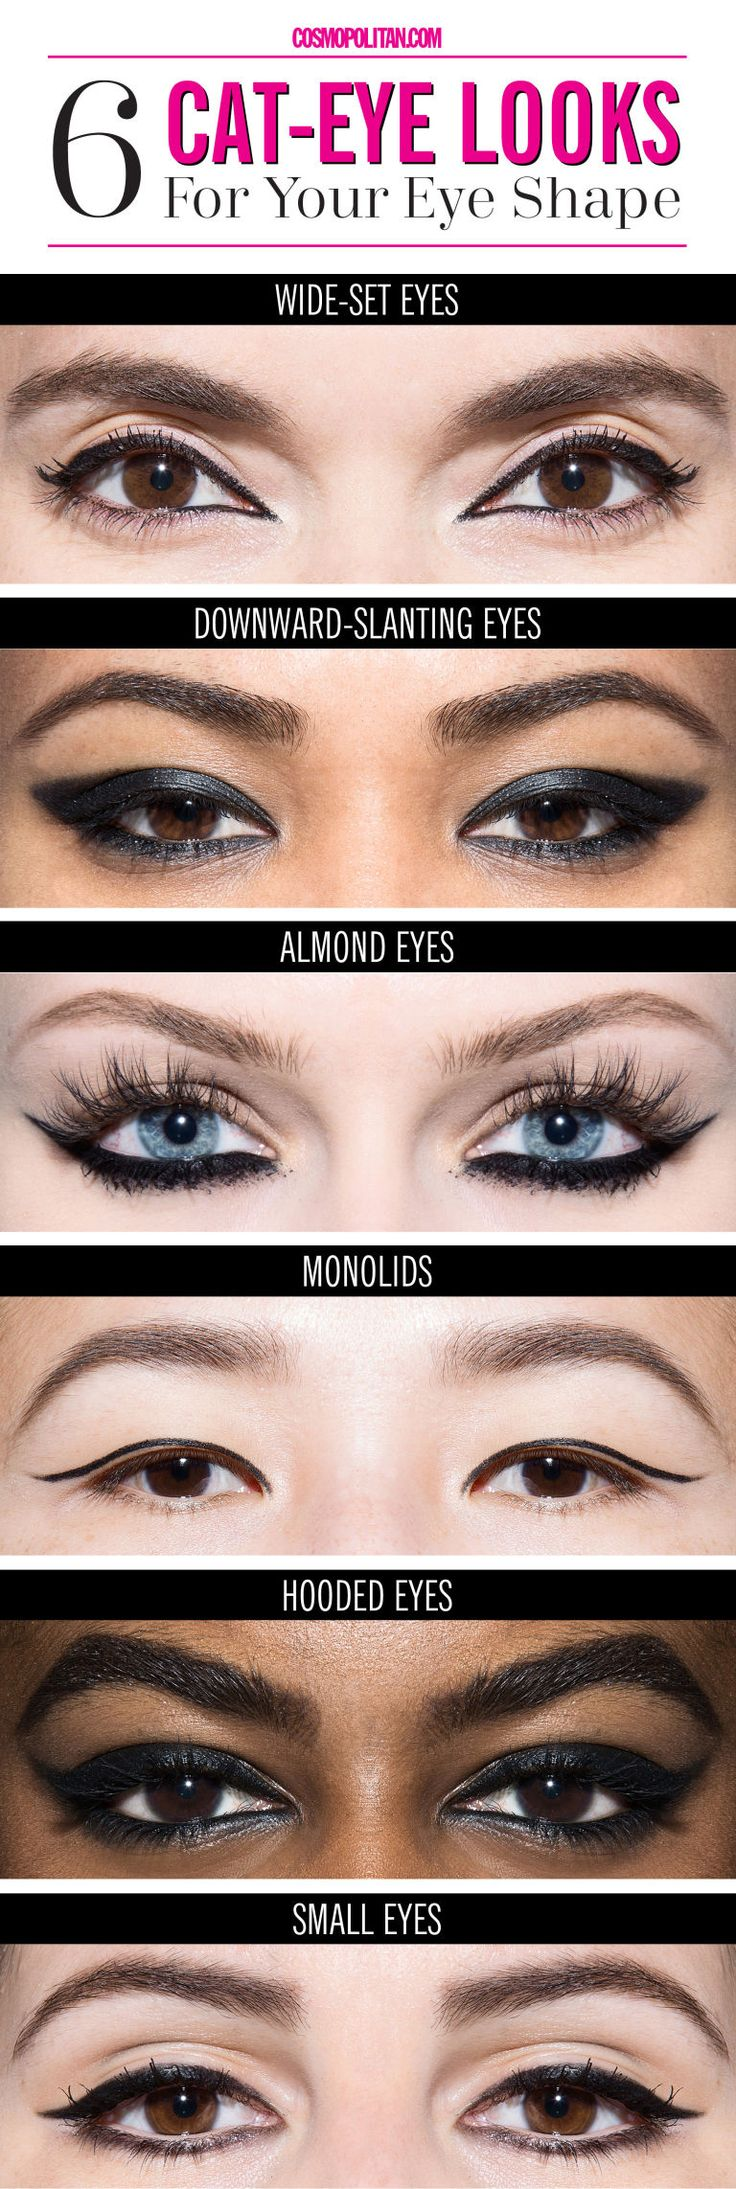 When it comes to eyeliner, there isn't a winged shape that is going to make your eyes look bad, but there are certain tricks that you can use for different eye shapes — they can even bring symmetry to asymmetrical eyes.